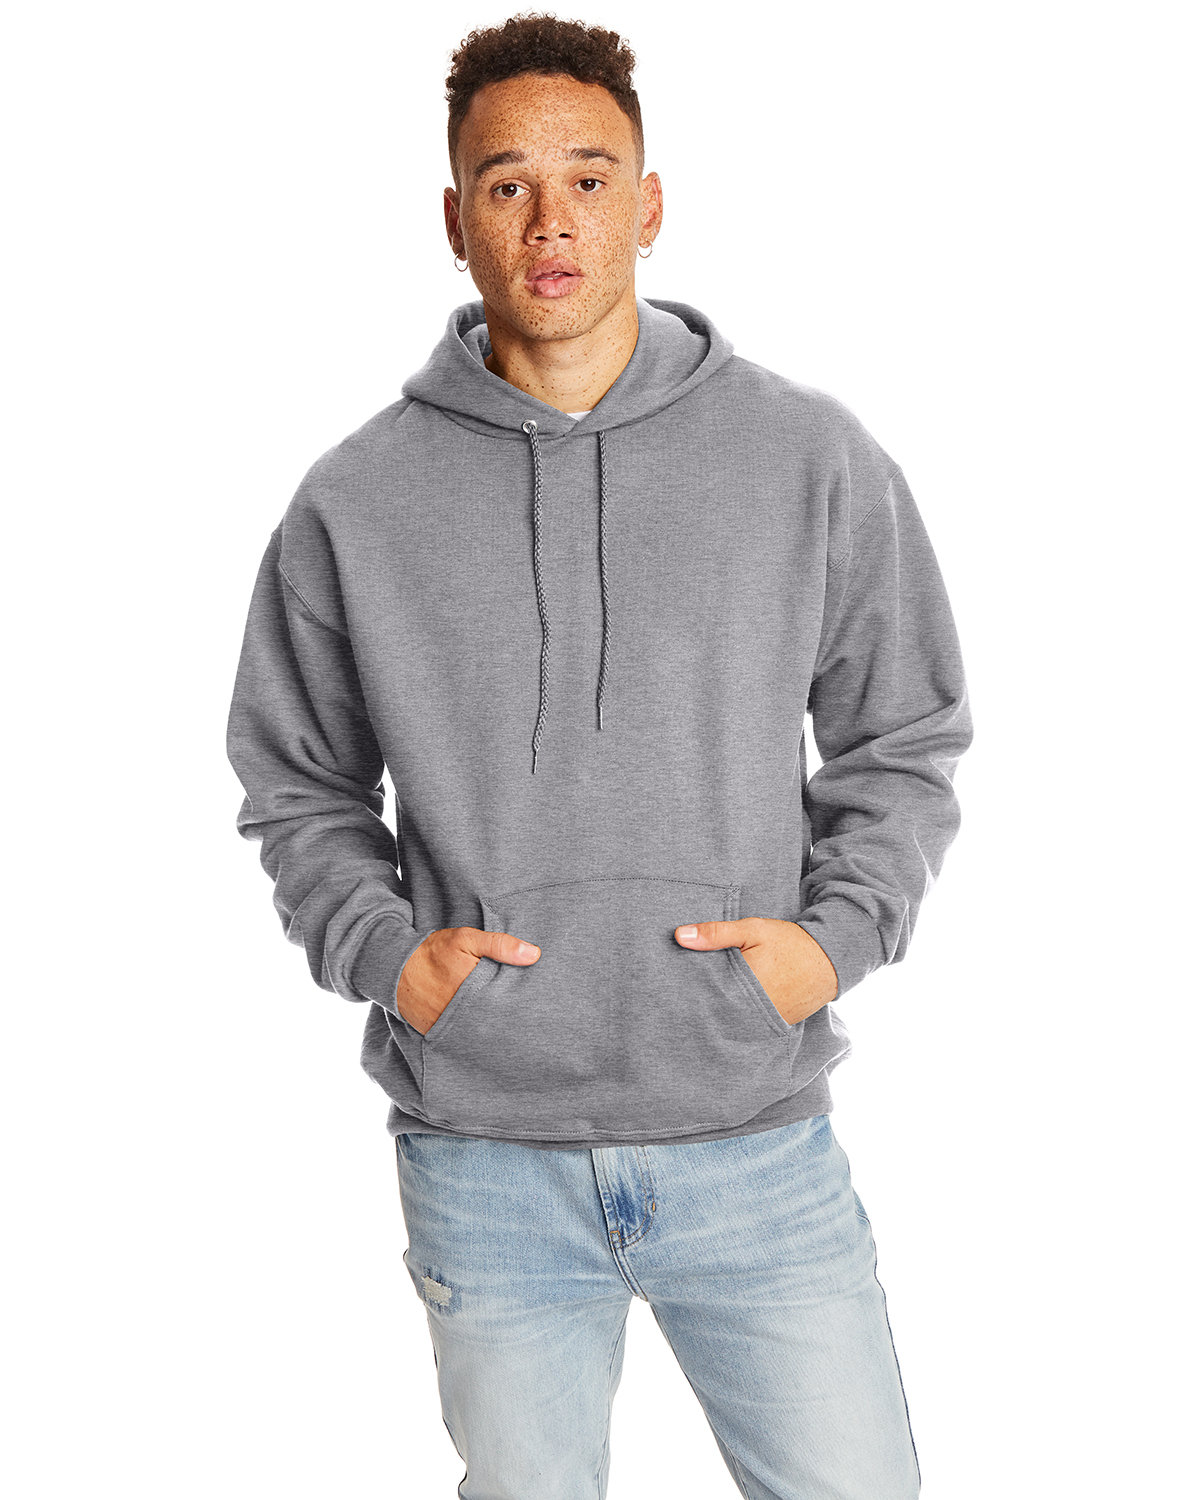 Hanes Adult Ultimate Cotton® 90/10 Pullover Hooded Sweatshirt OXFORD GRAY